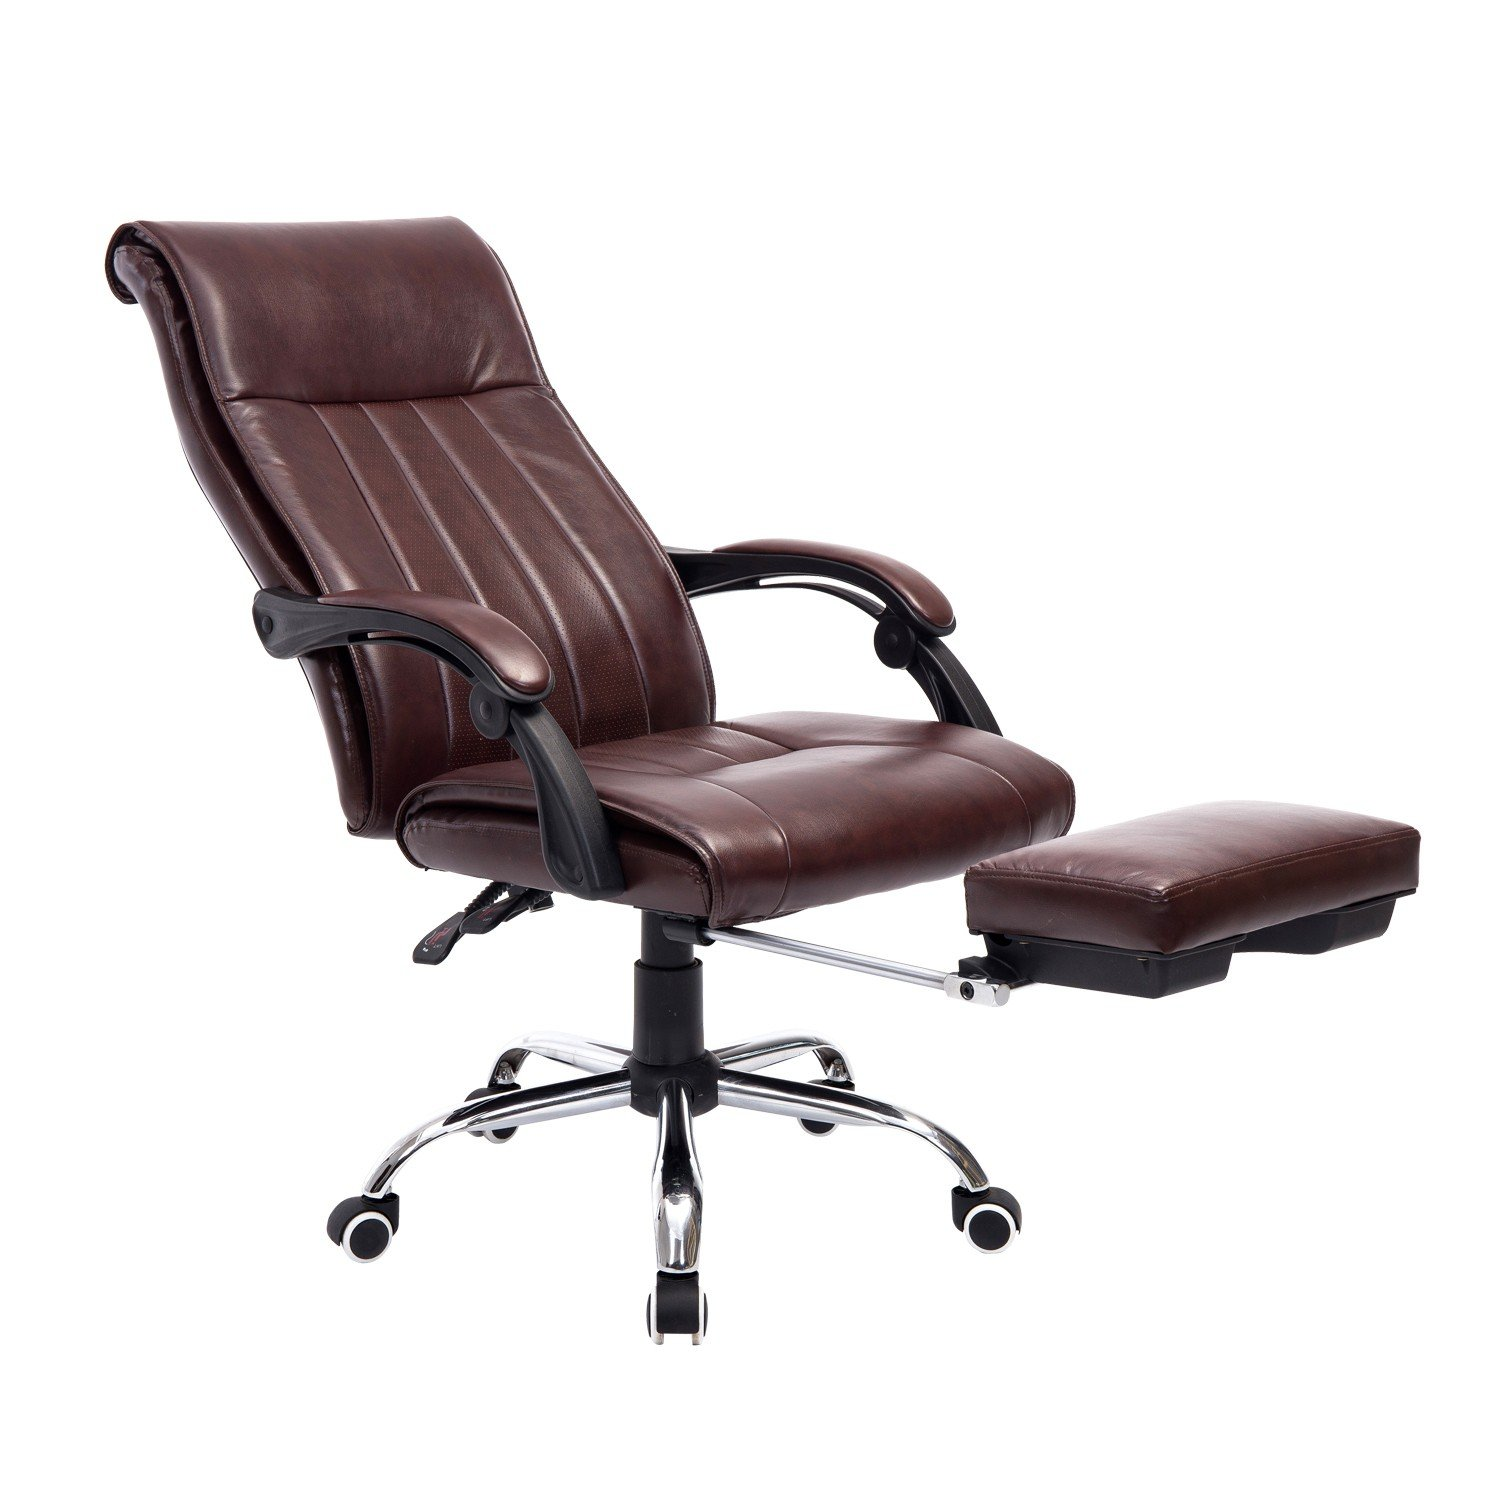 reclining office chairs australia stretch dining chair covers canada modern adjustable swivel with footrest